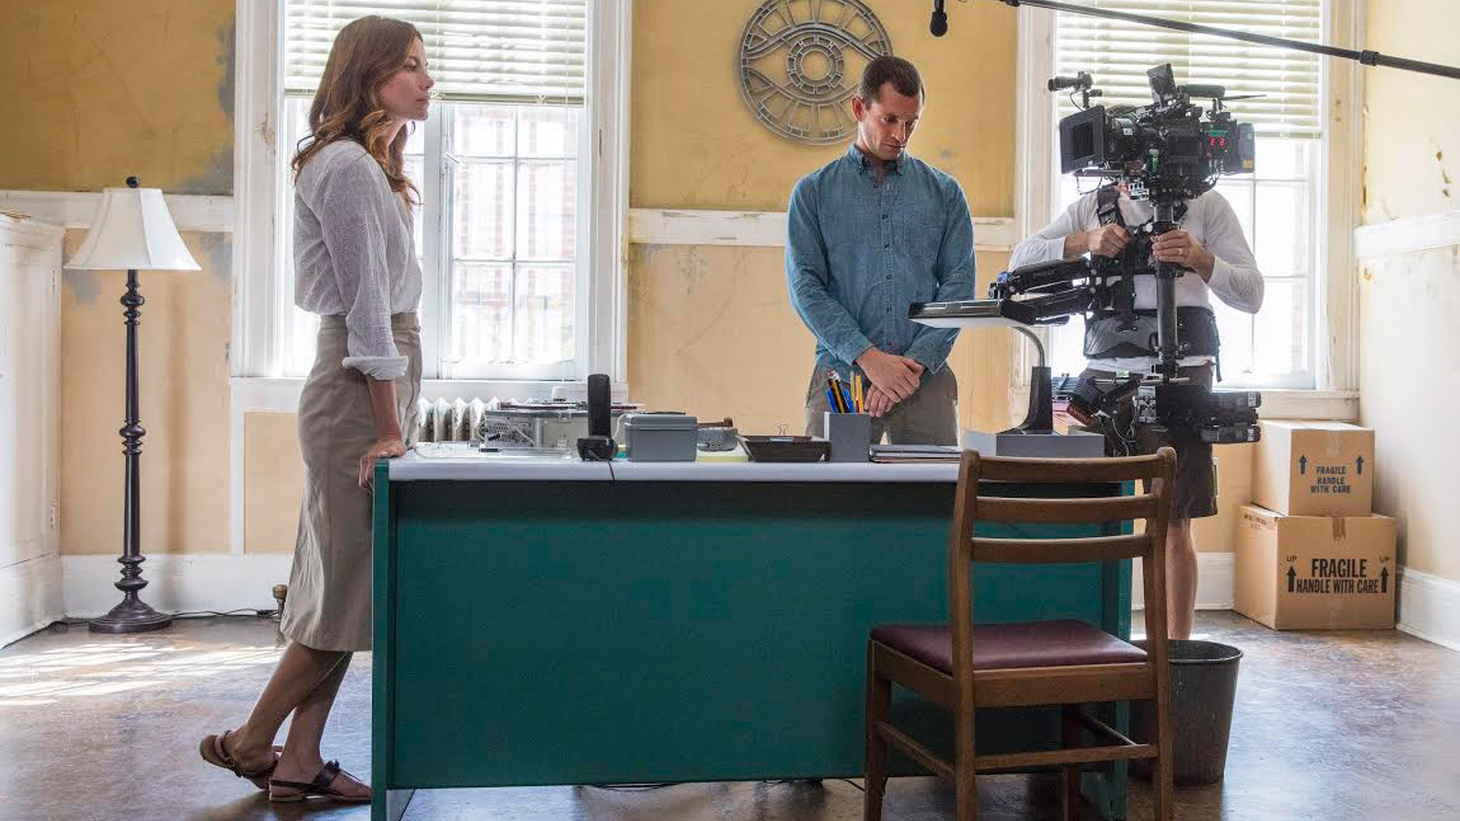 Michelle Monaghan joins Elvis to discuss the strength and darkness of her character Sarah on Hulu's The Path.